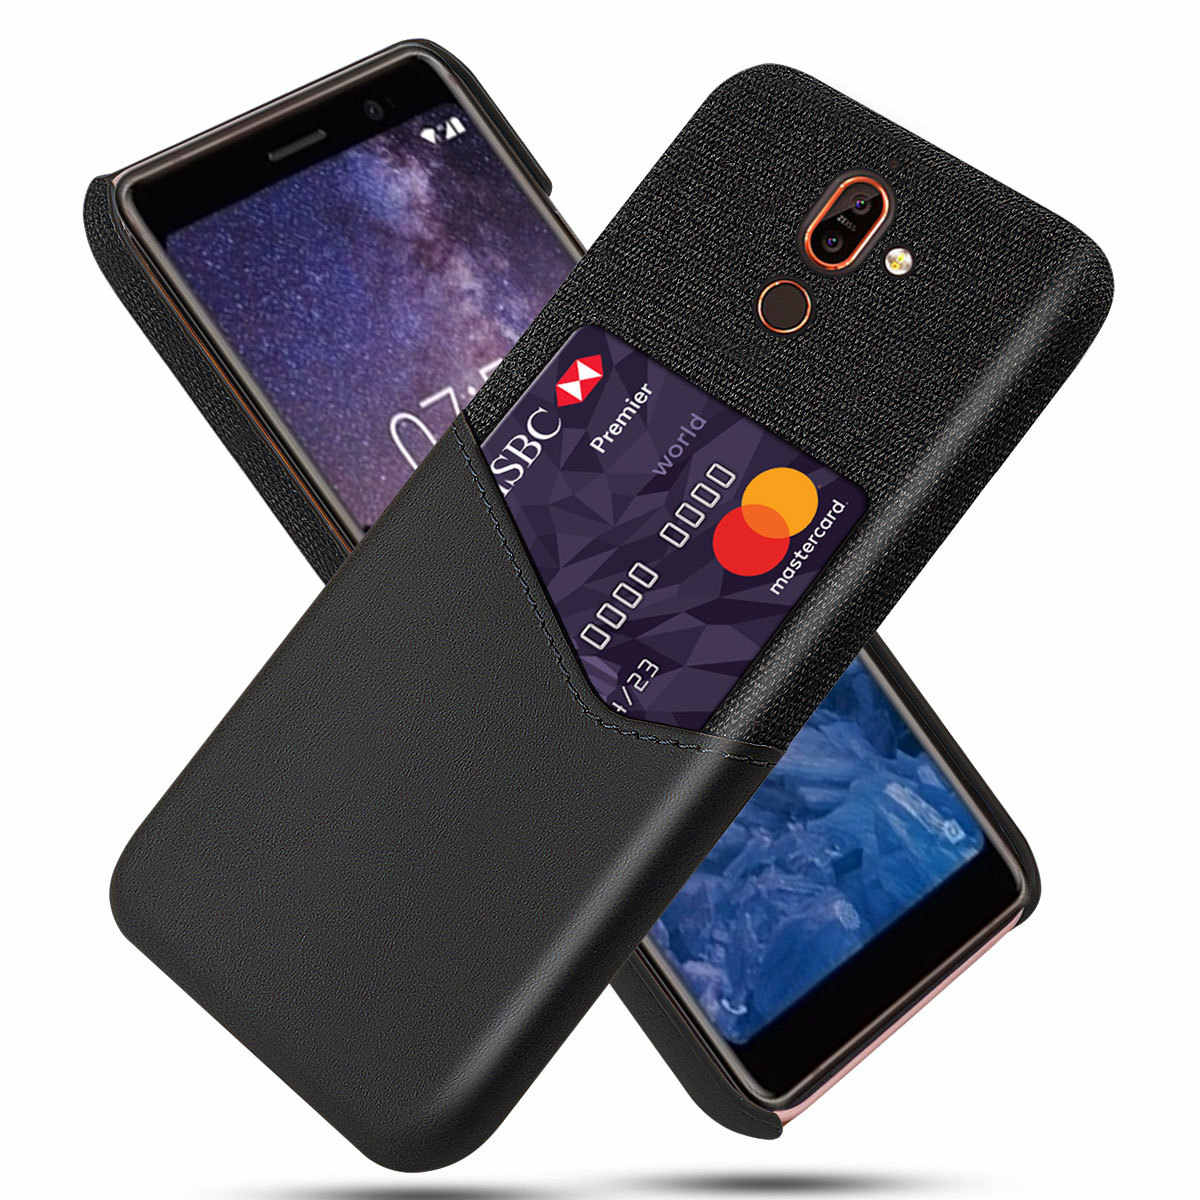 Applicable Nokia 7 plus Phone Case Simple Card Instert Leather Case Nokia 7 plus Hard Case Protective Case Linen Finish